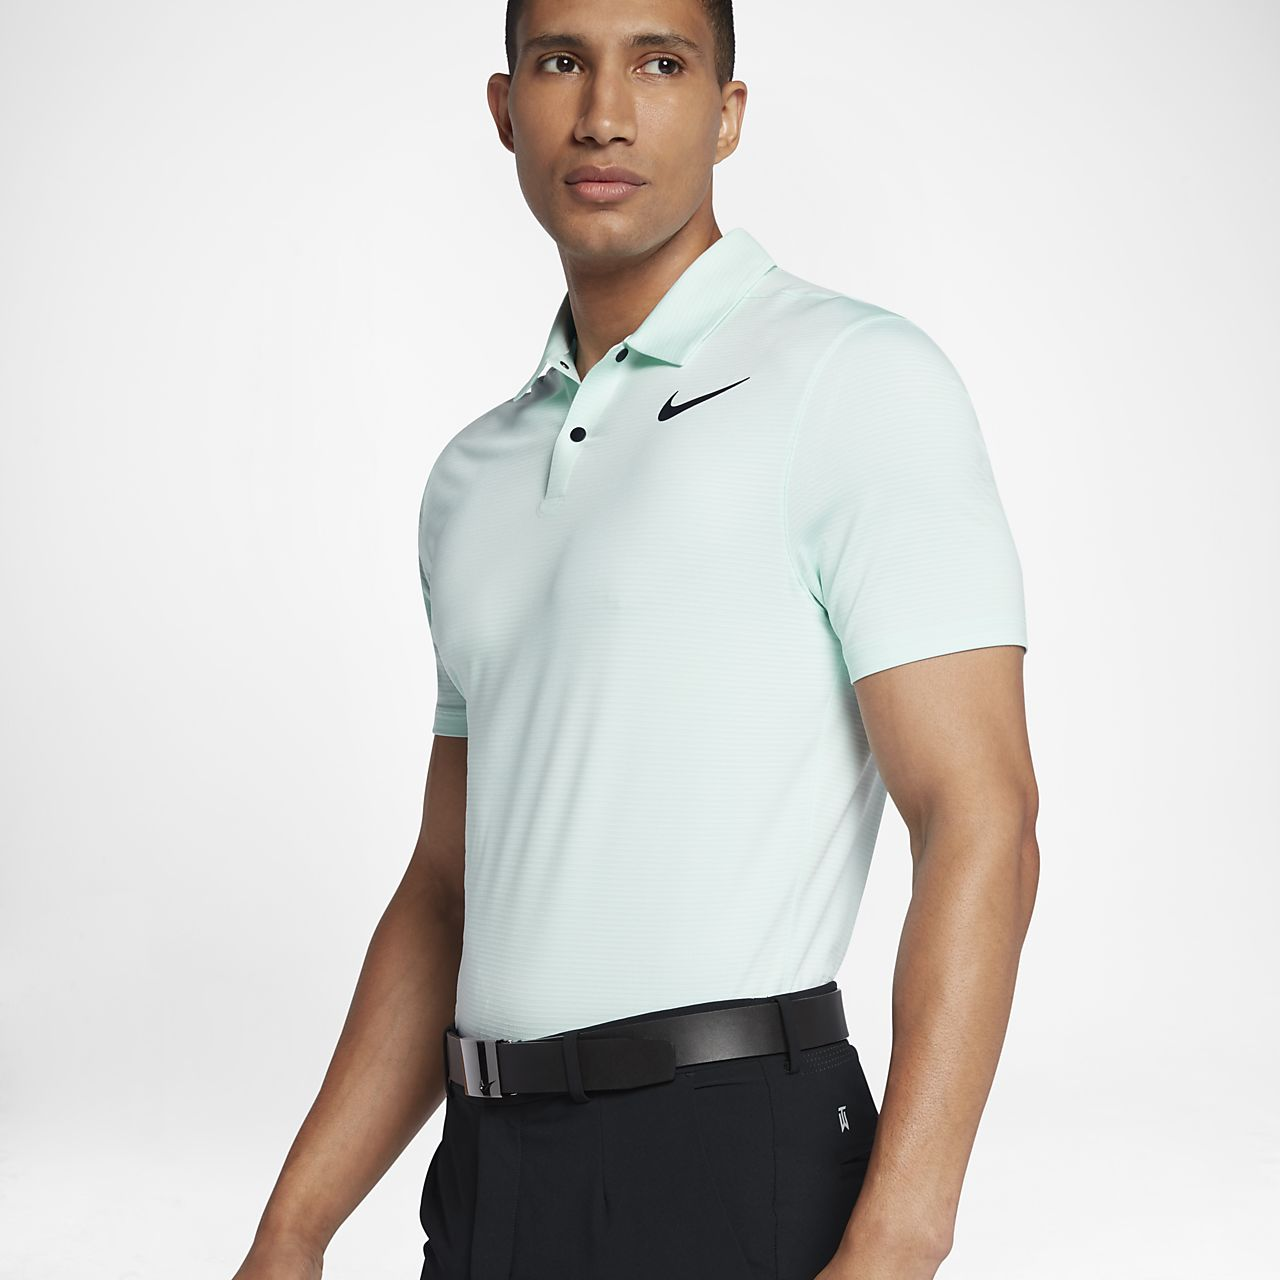 ... TW Dry Blur Stripe Men's Standard Fit Golf Polo